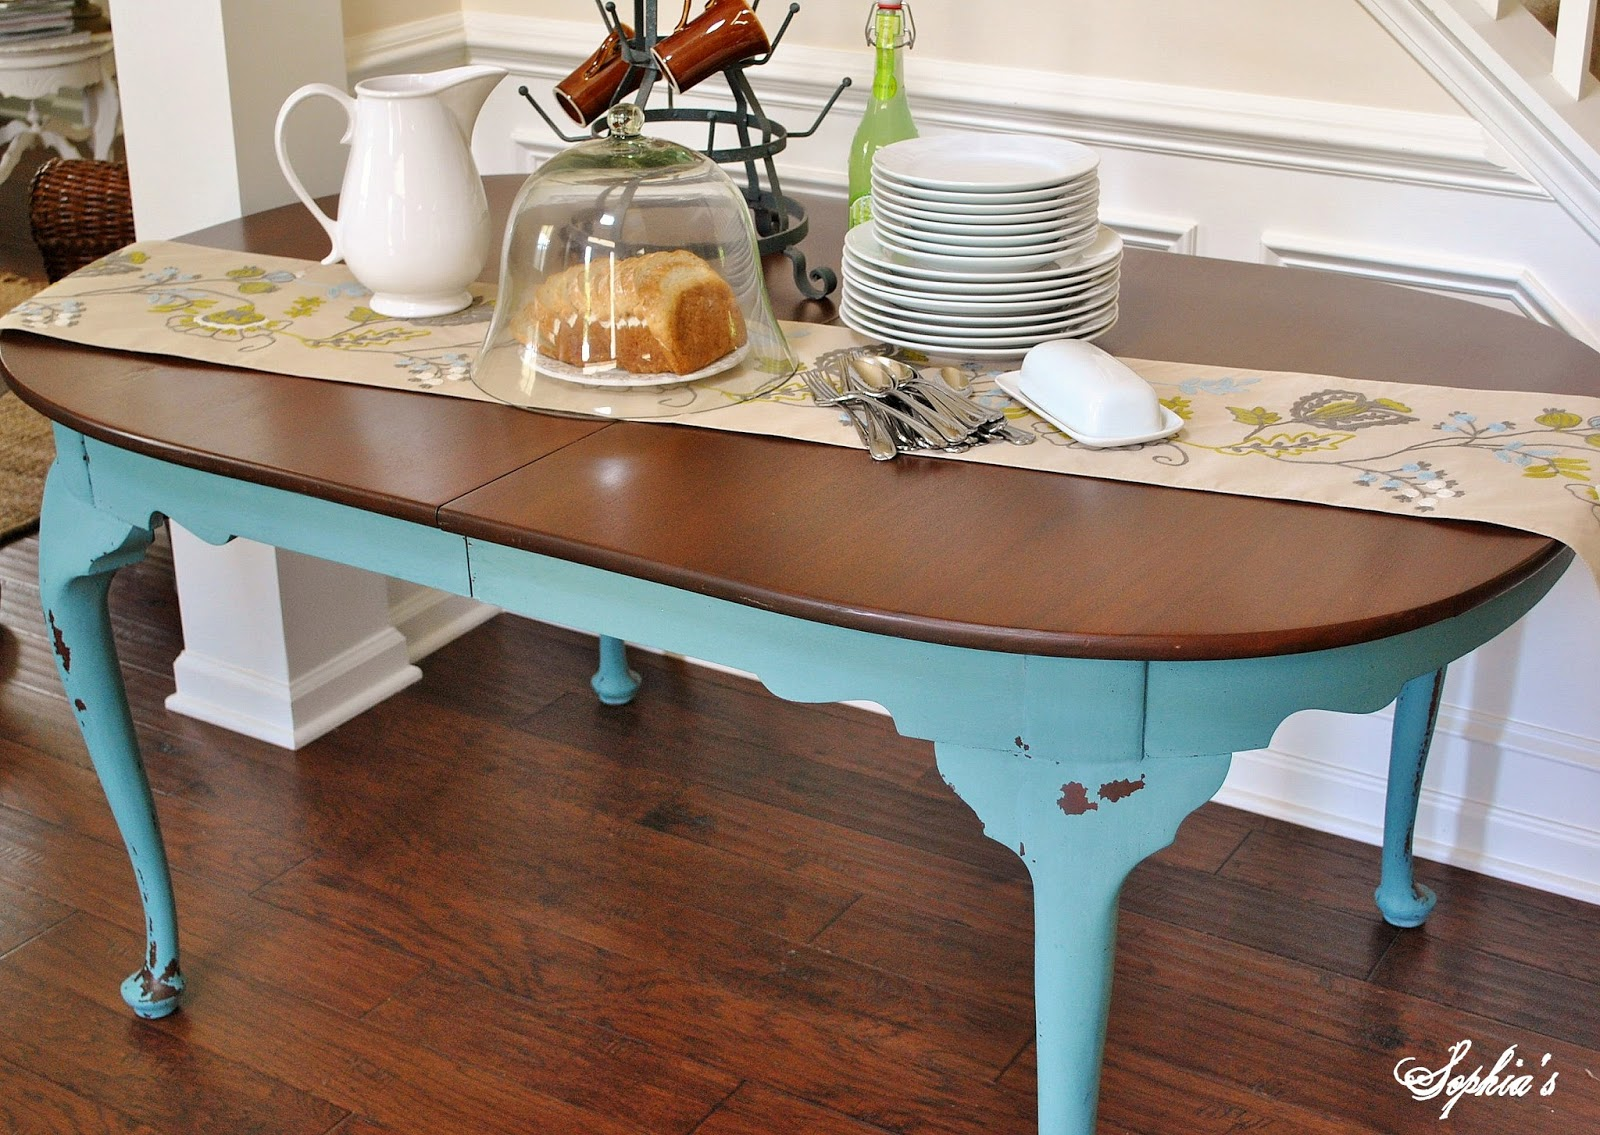 American Drew Dining Room Furniture Sophia S Two Toned Dresser And Kitchen Scale Dining Table